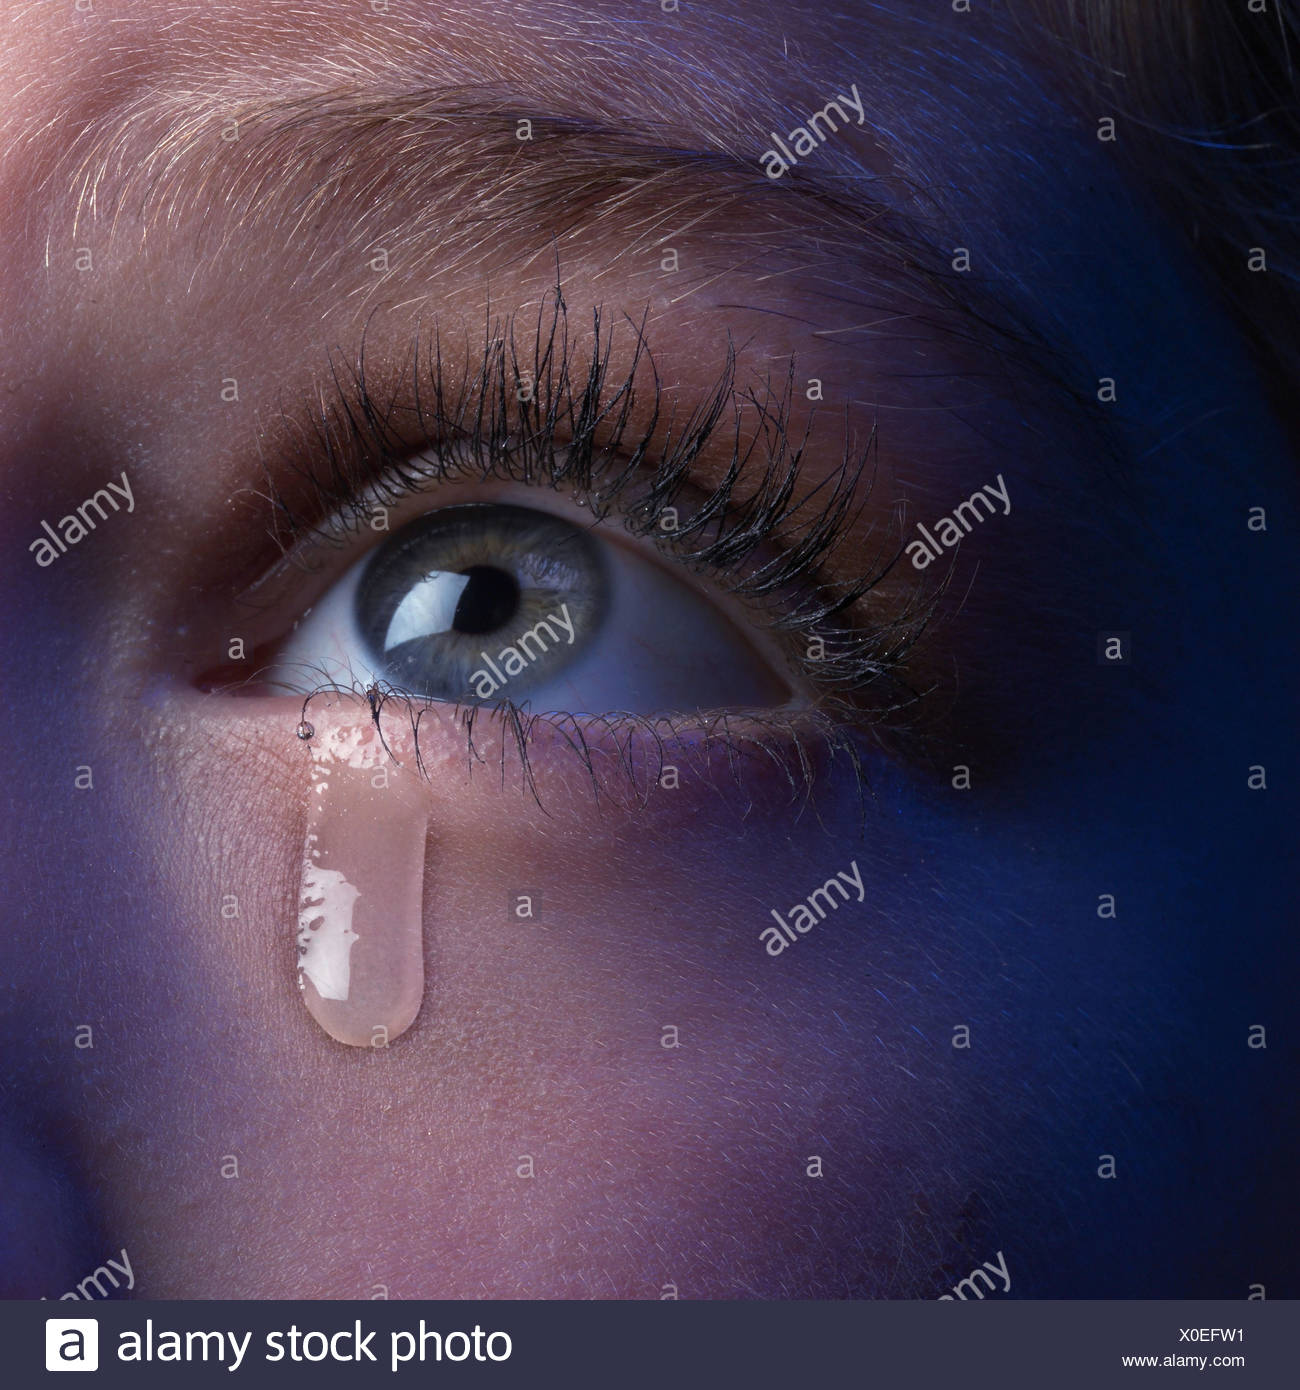 woman look detail eye tear close up young eye area blue eyes